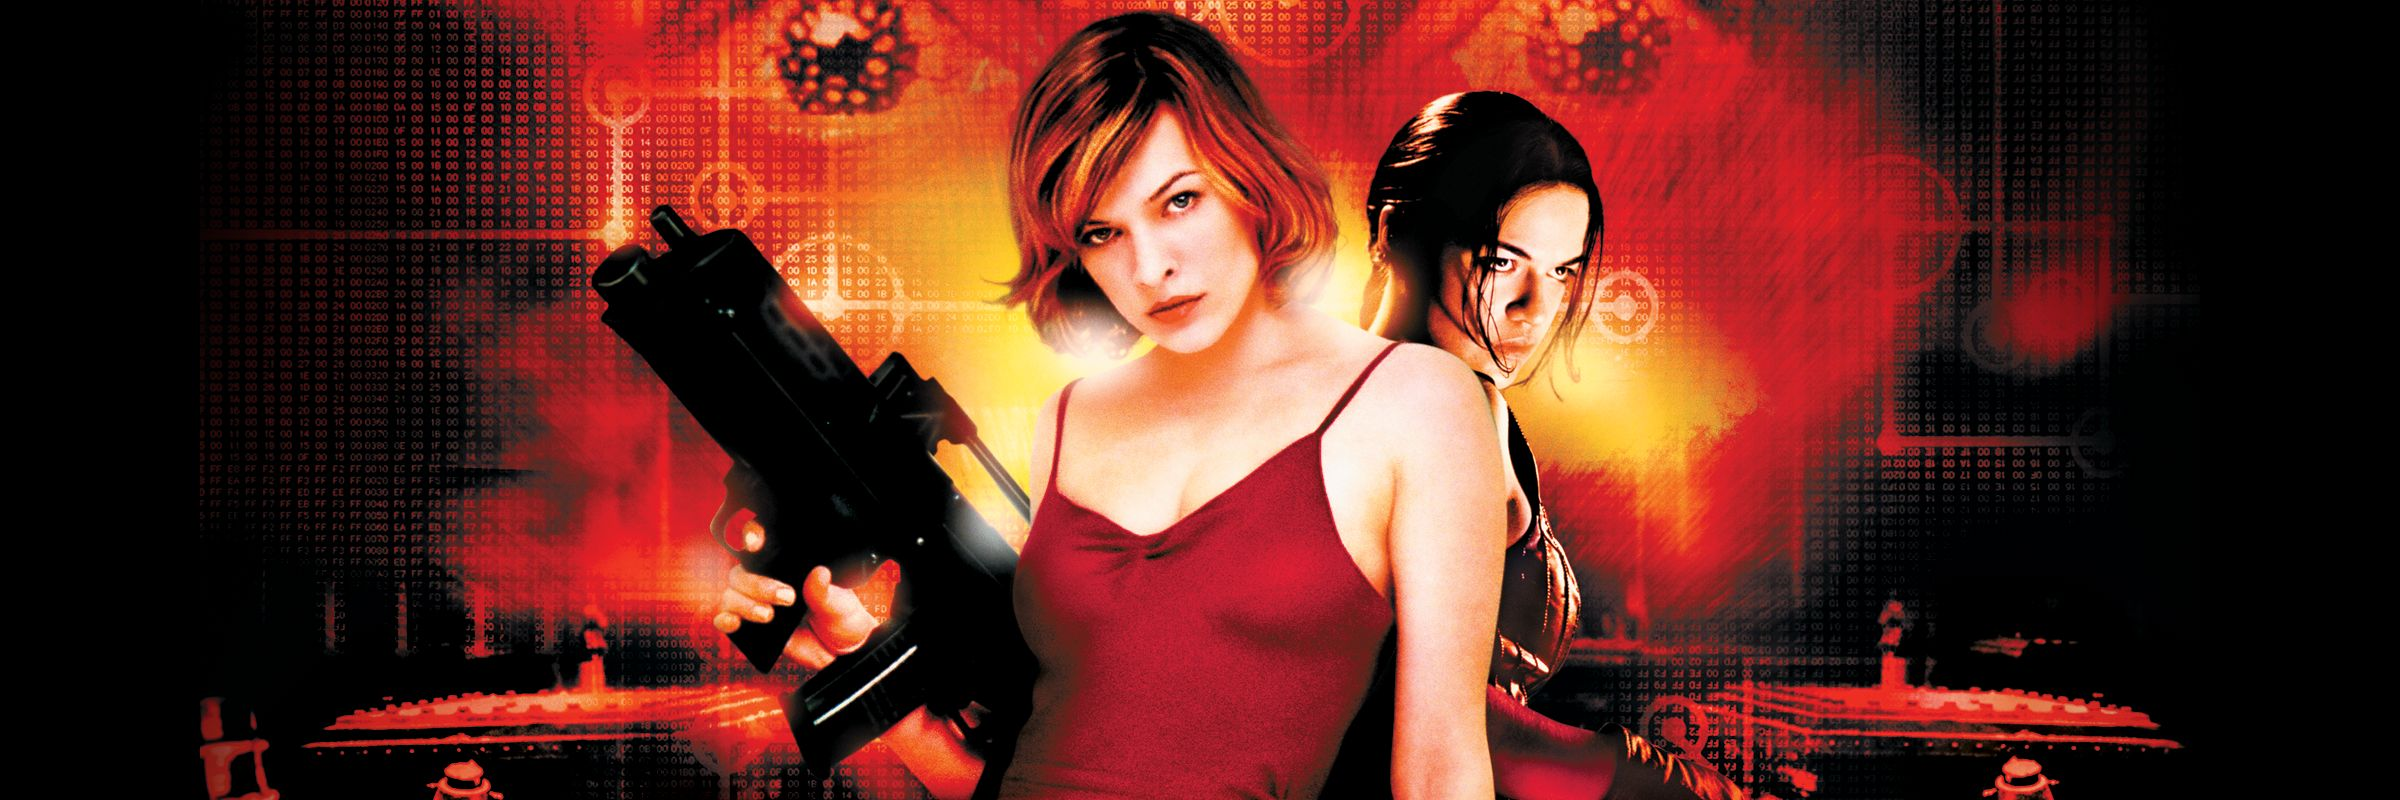 Resident Evil Full Movie Movies Anywhere